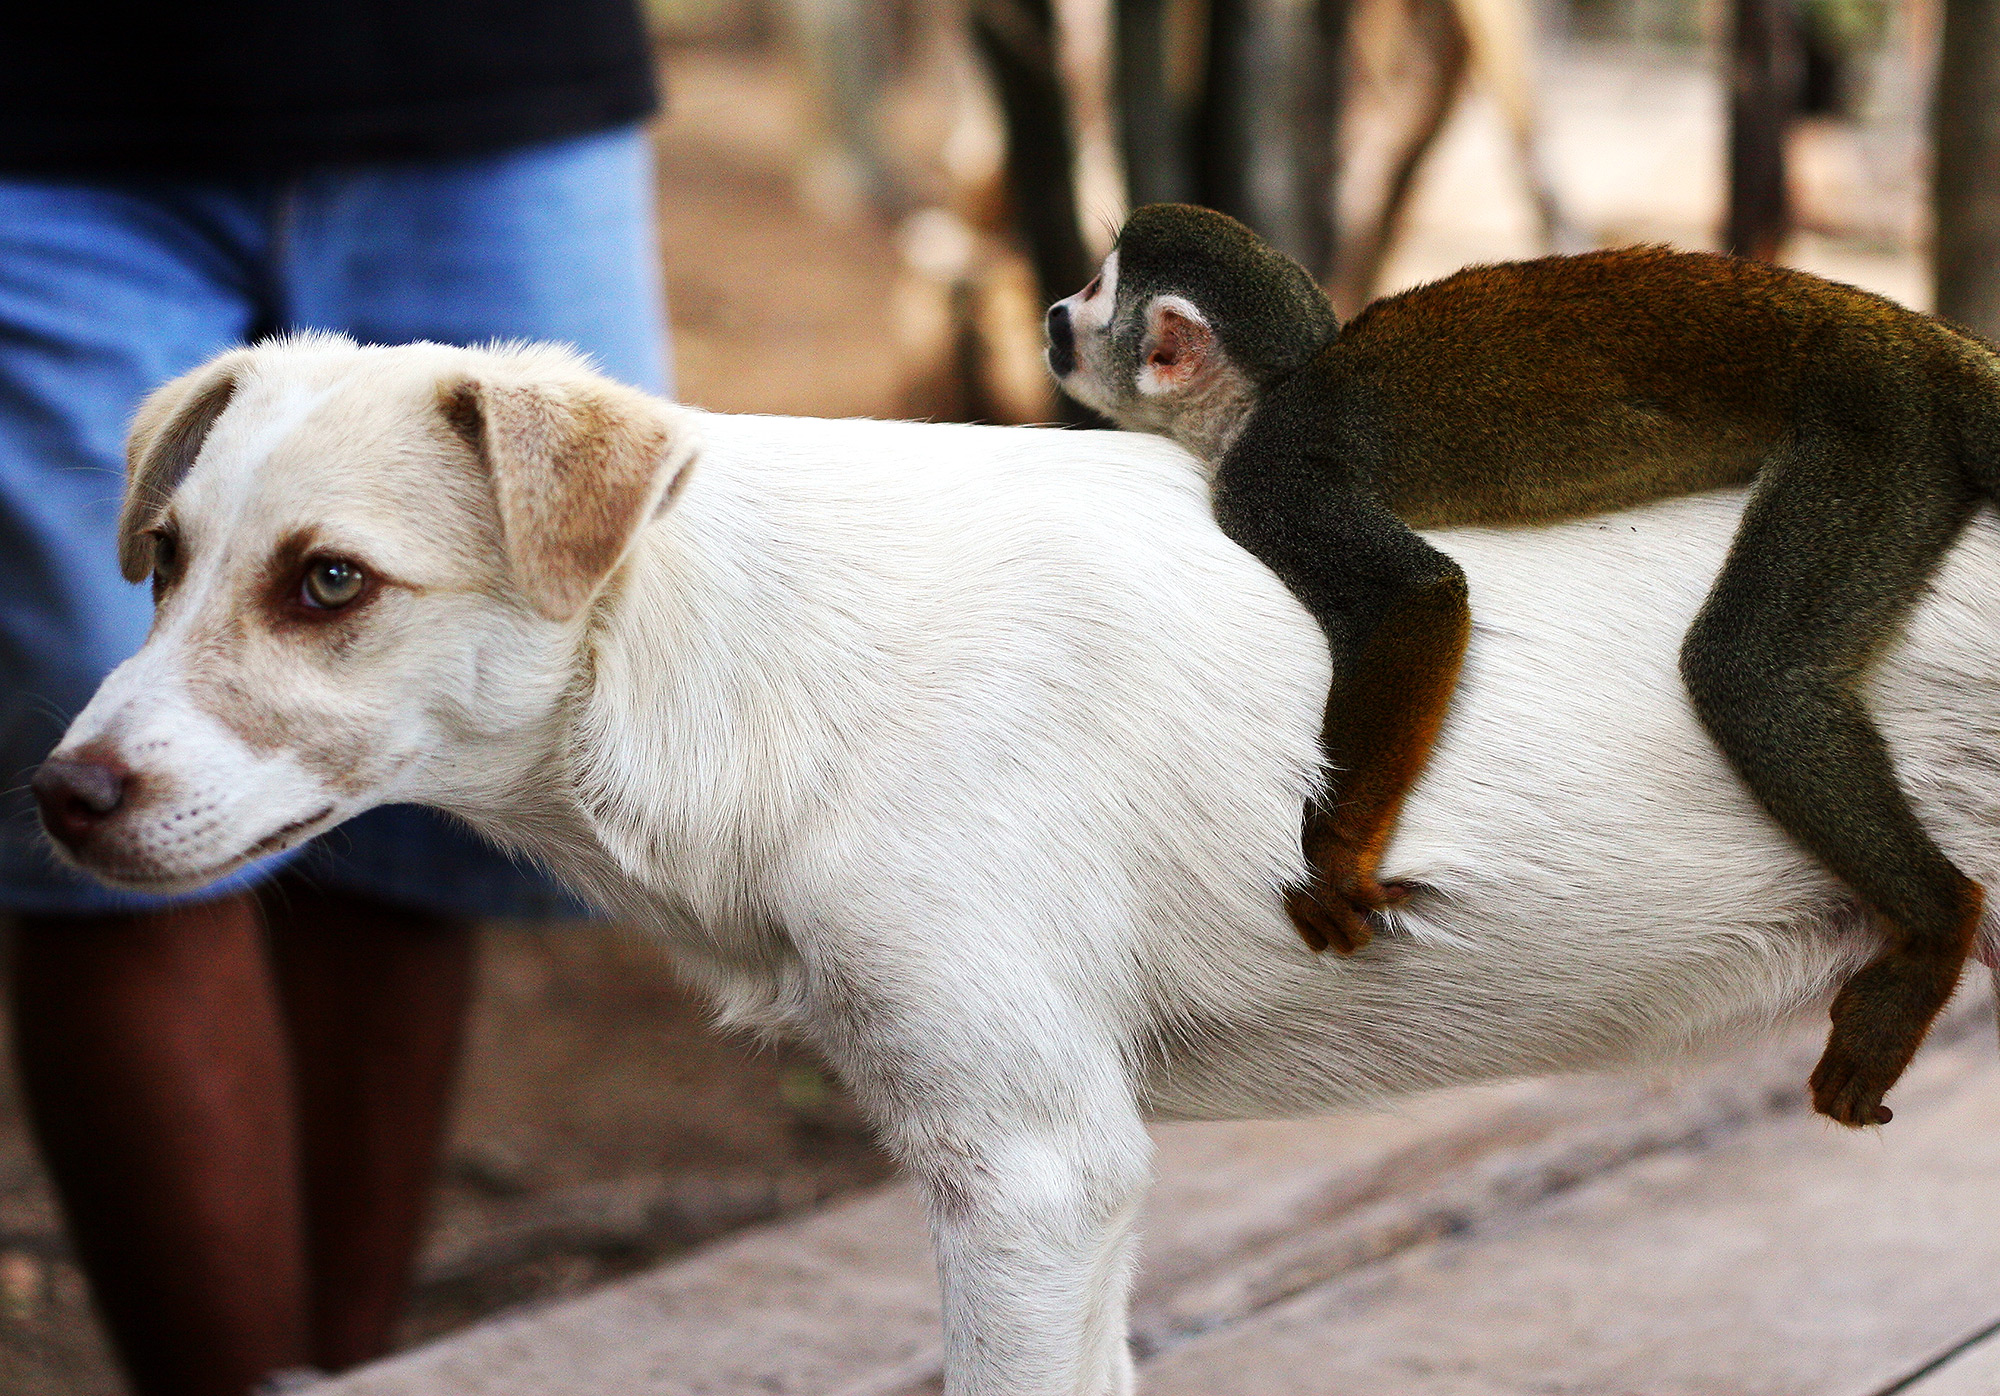 Monkey Becomes Mom Dog's Best Friend After She Loses Her Puppies ...